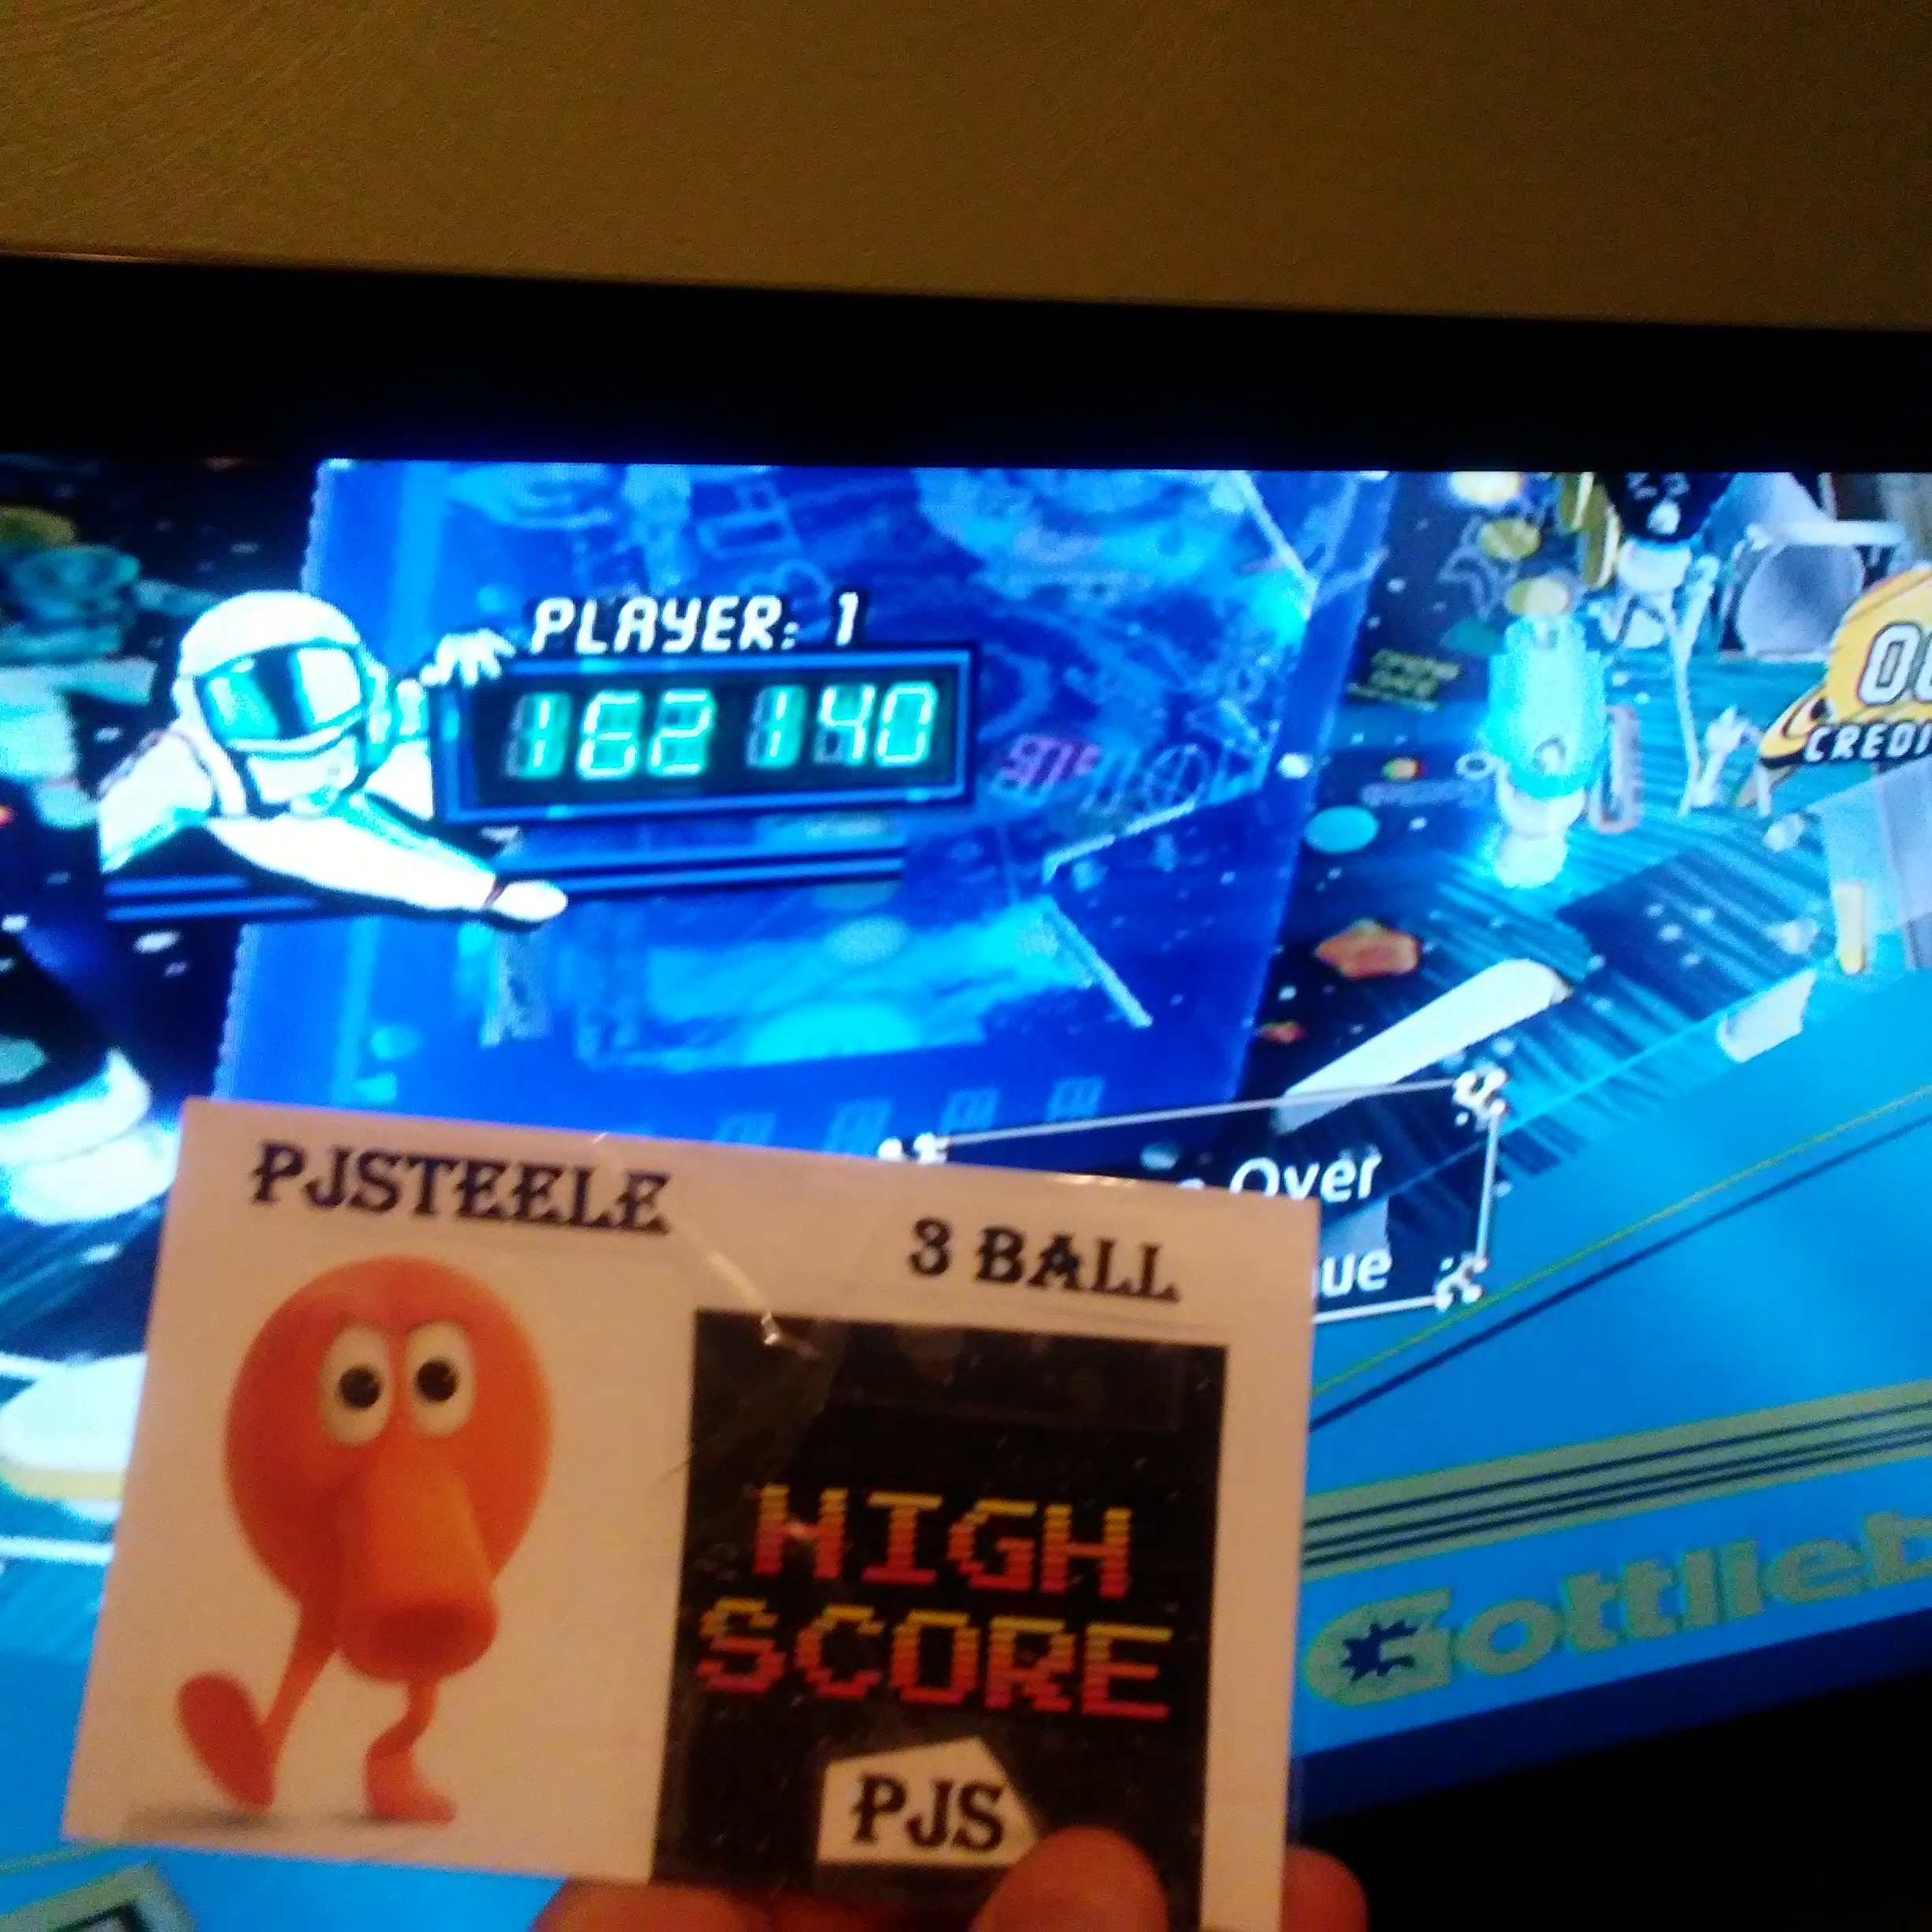 Pjsteele: Pinball Hall of Fame: The Gottlieb Collection: Black Hole [3 Balls] (GameCube) 162,140 points on 2018-01-28 15:02:05